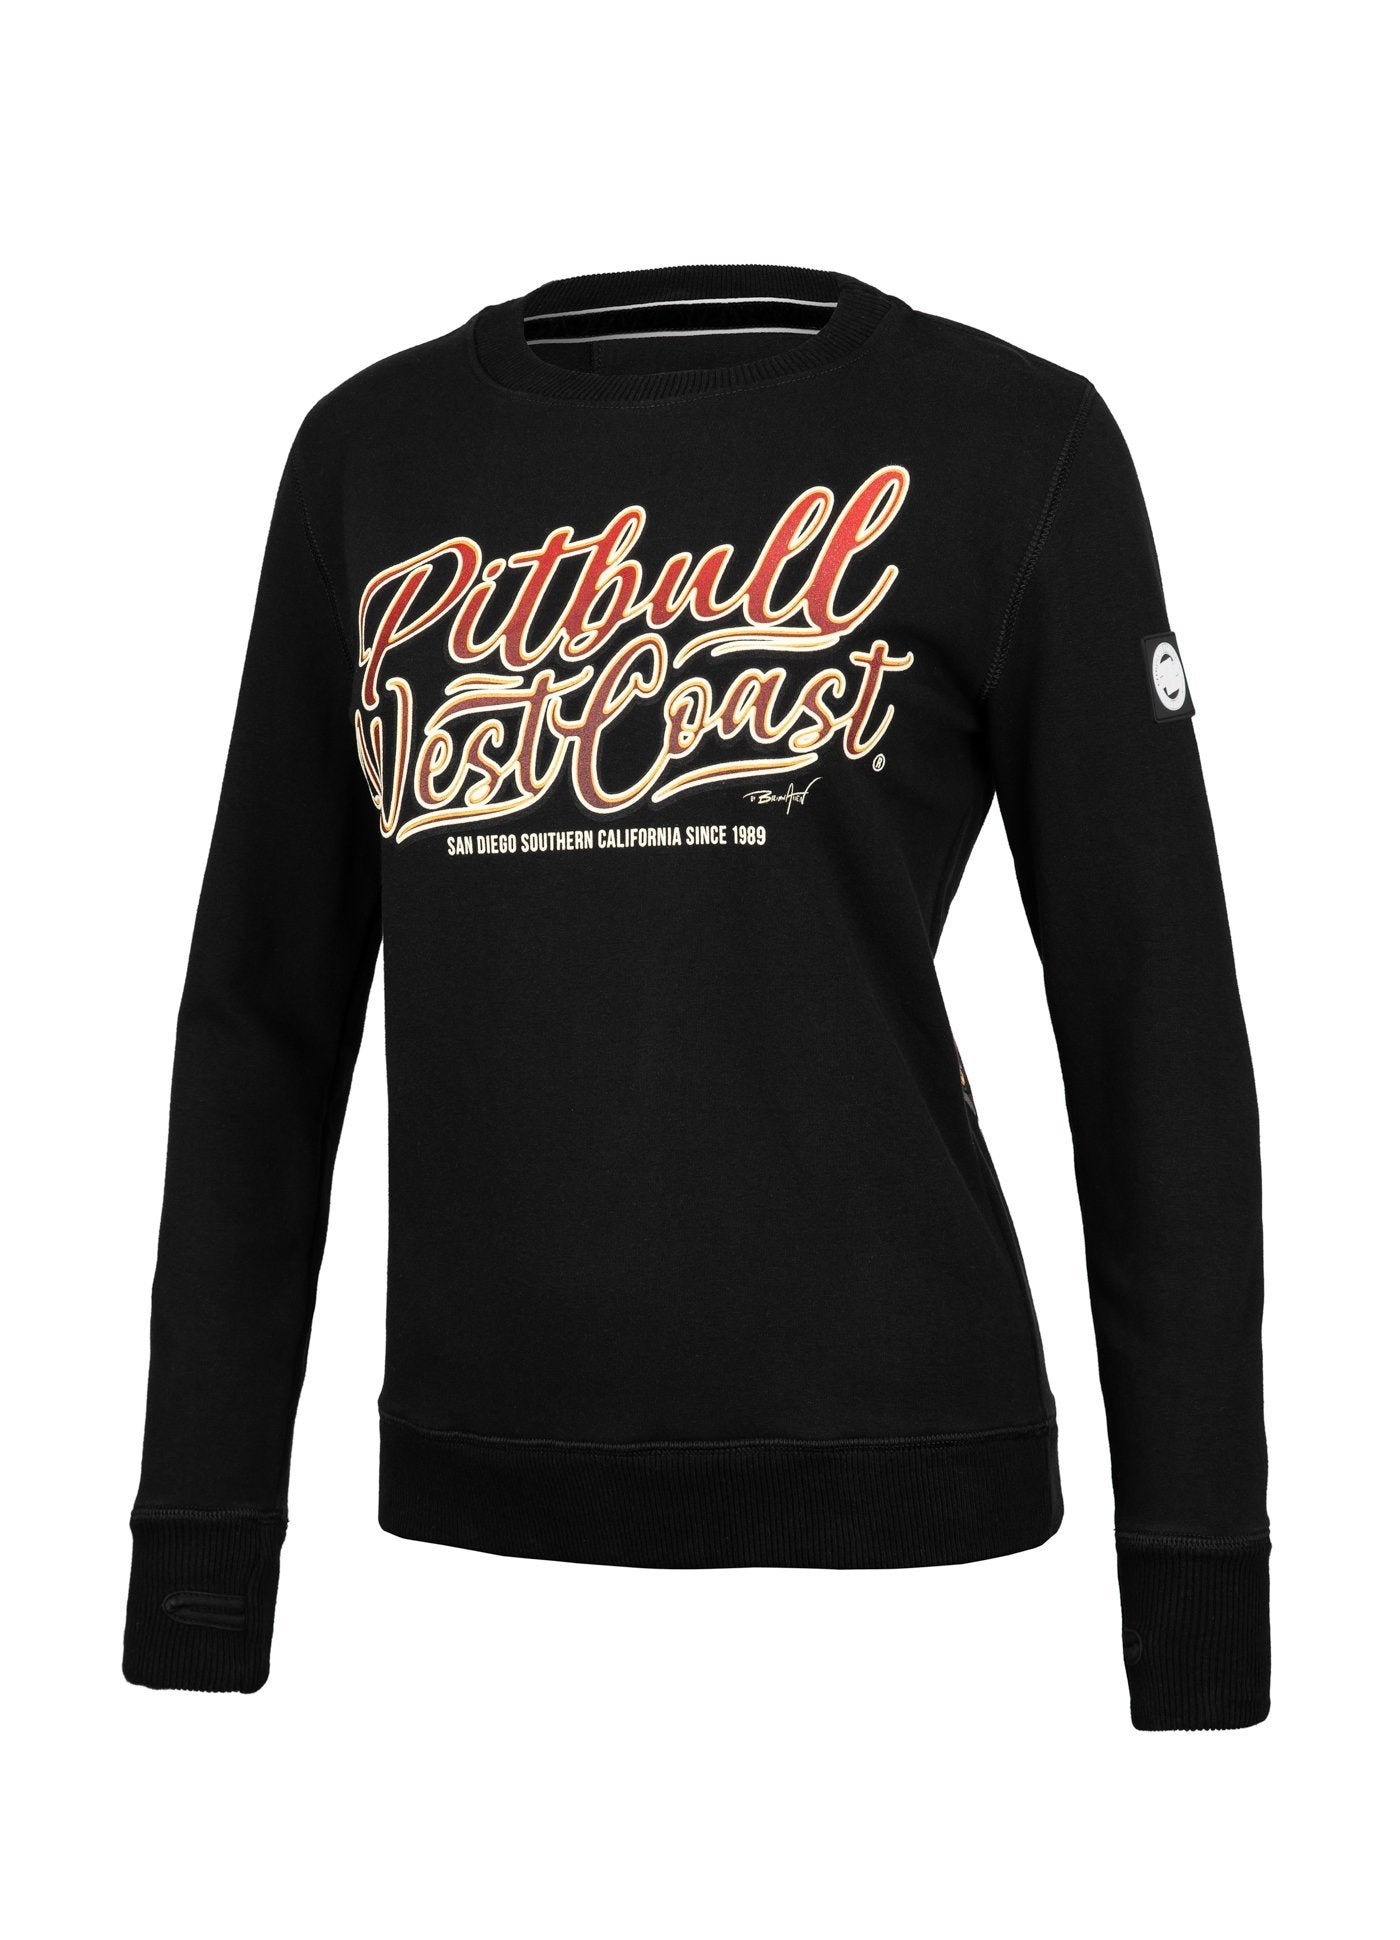 WOMEN CREWNECK City of Dogs BLACK - Pitbull West Coast U.S.A.